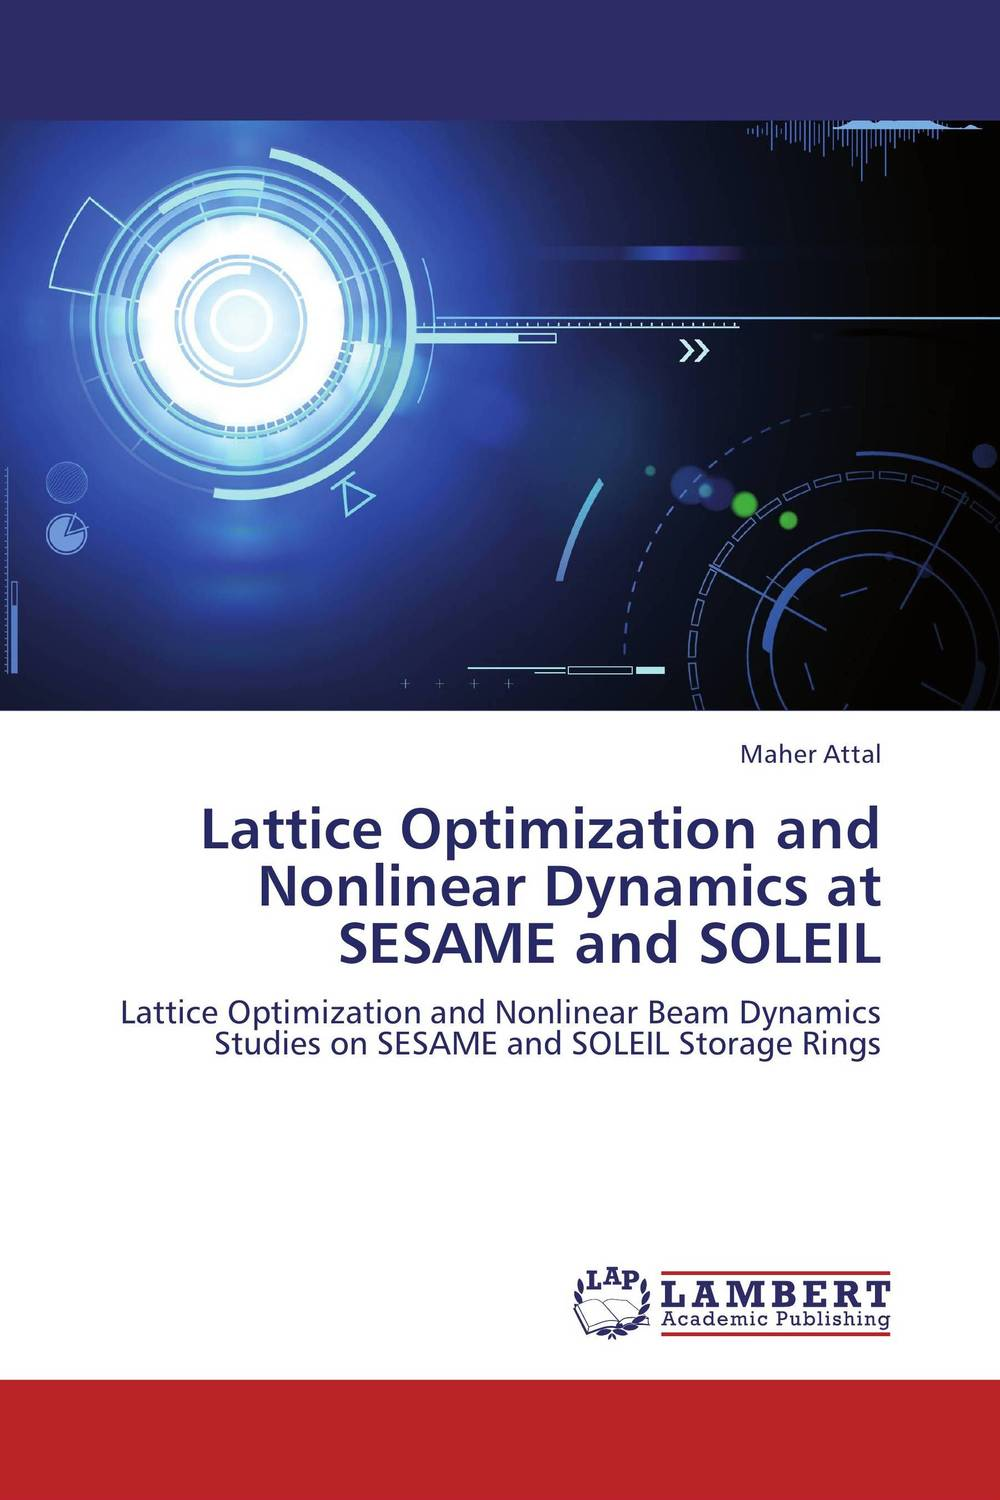 Lattice Optimization and Nonlinear Dynamics at SESAME and SOLEIL